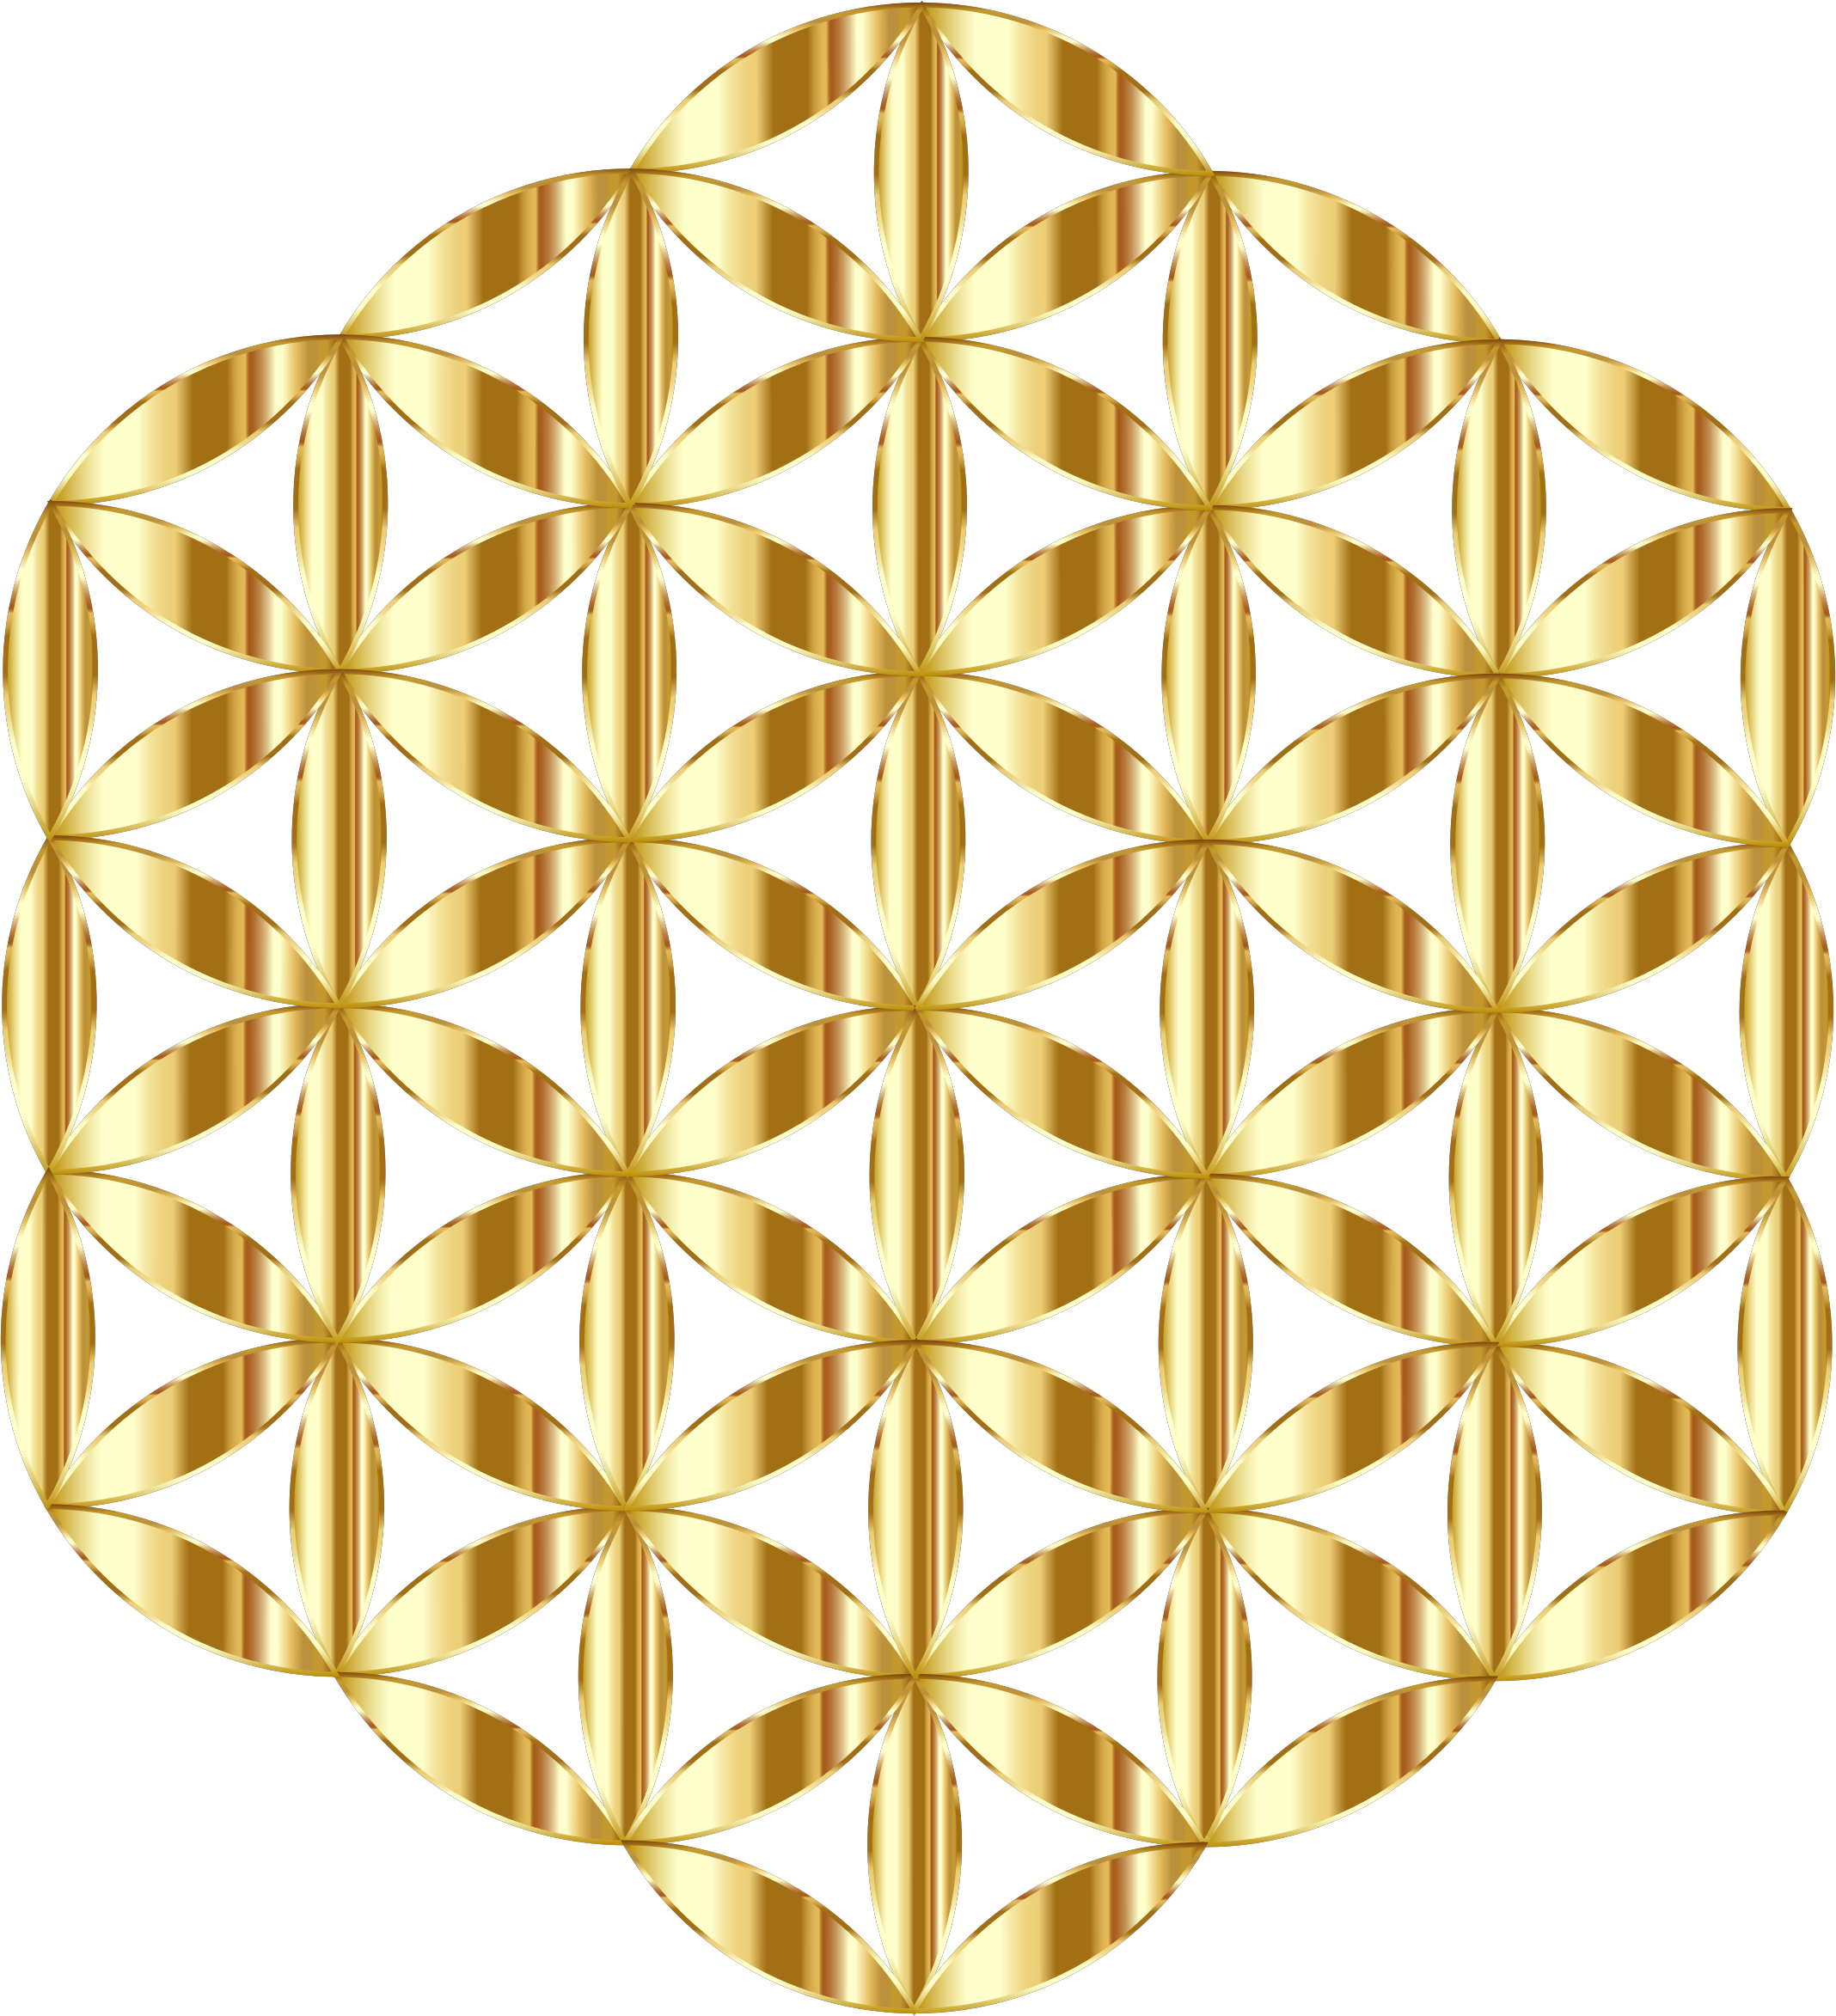 Flower of life clipart banner library download Clipart - Gold Flower Of Life No Background banner library download